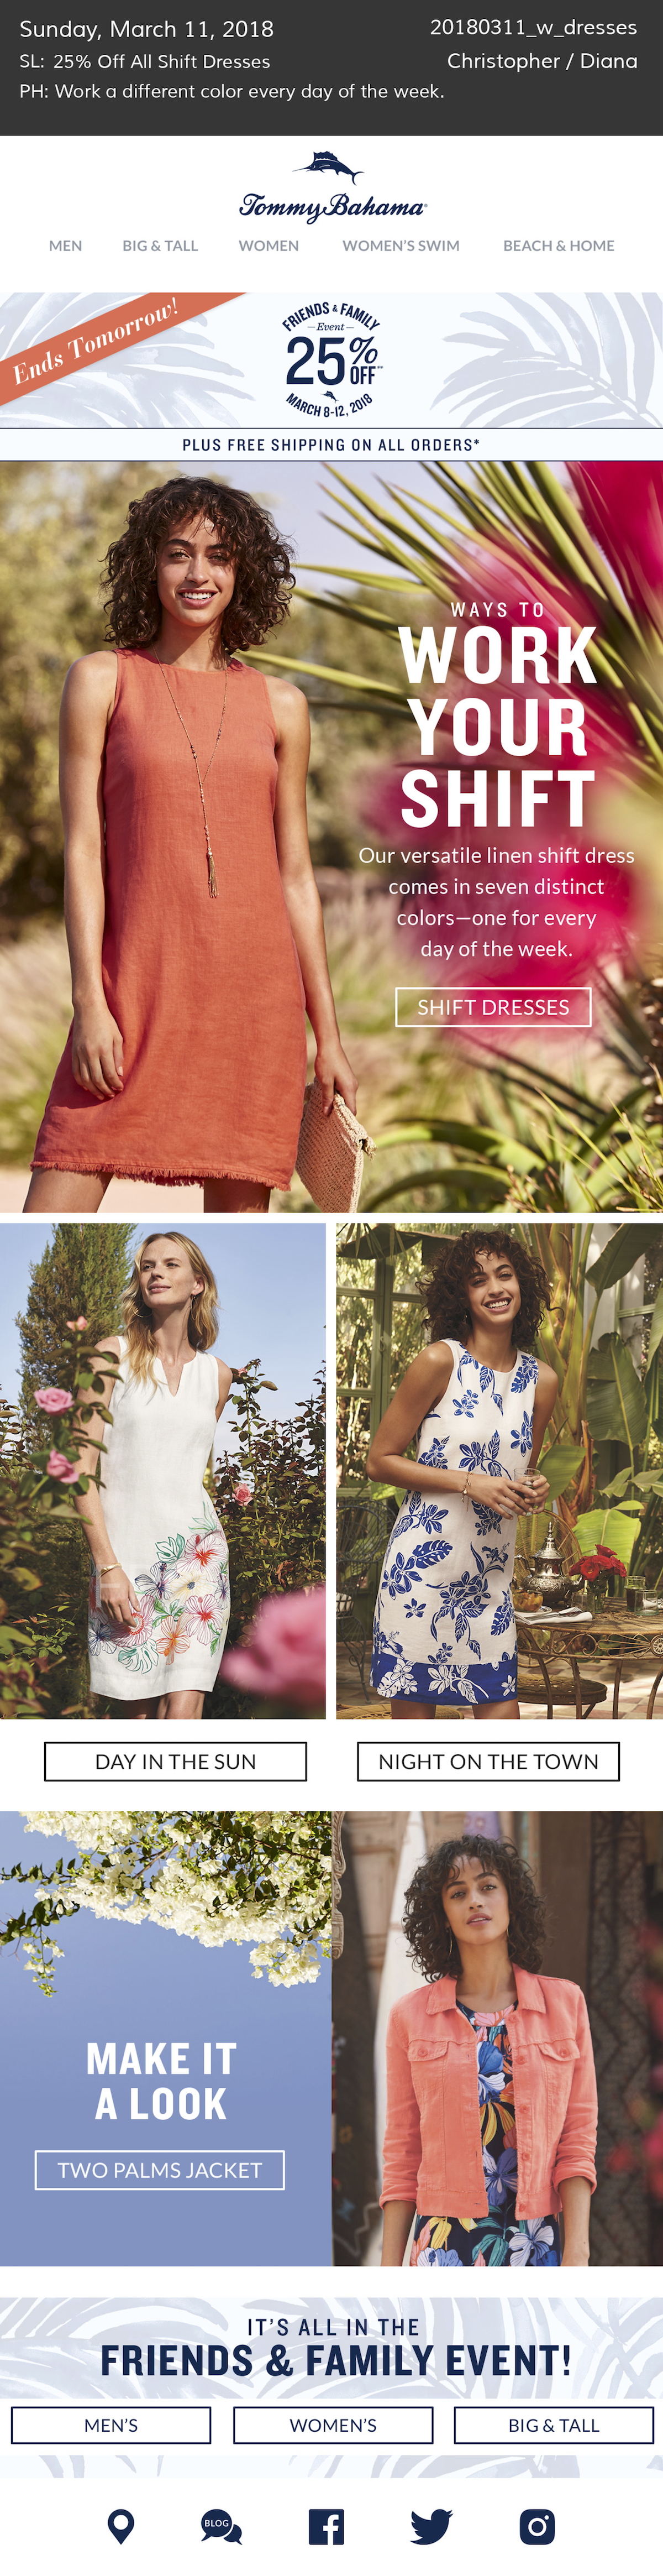 Tommy Bahama_Womens Email_Shift Dress.png